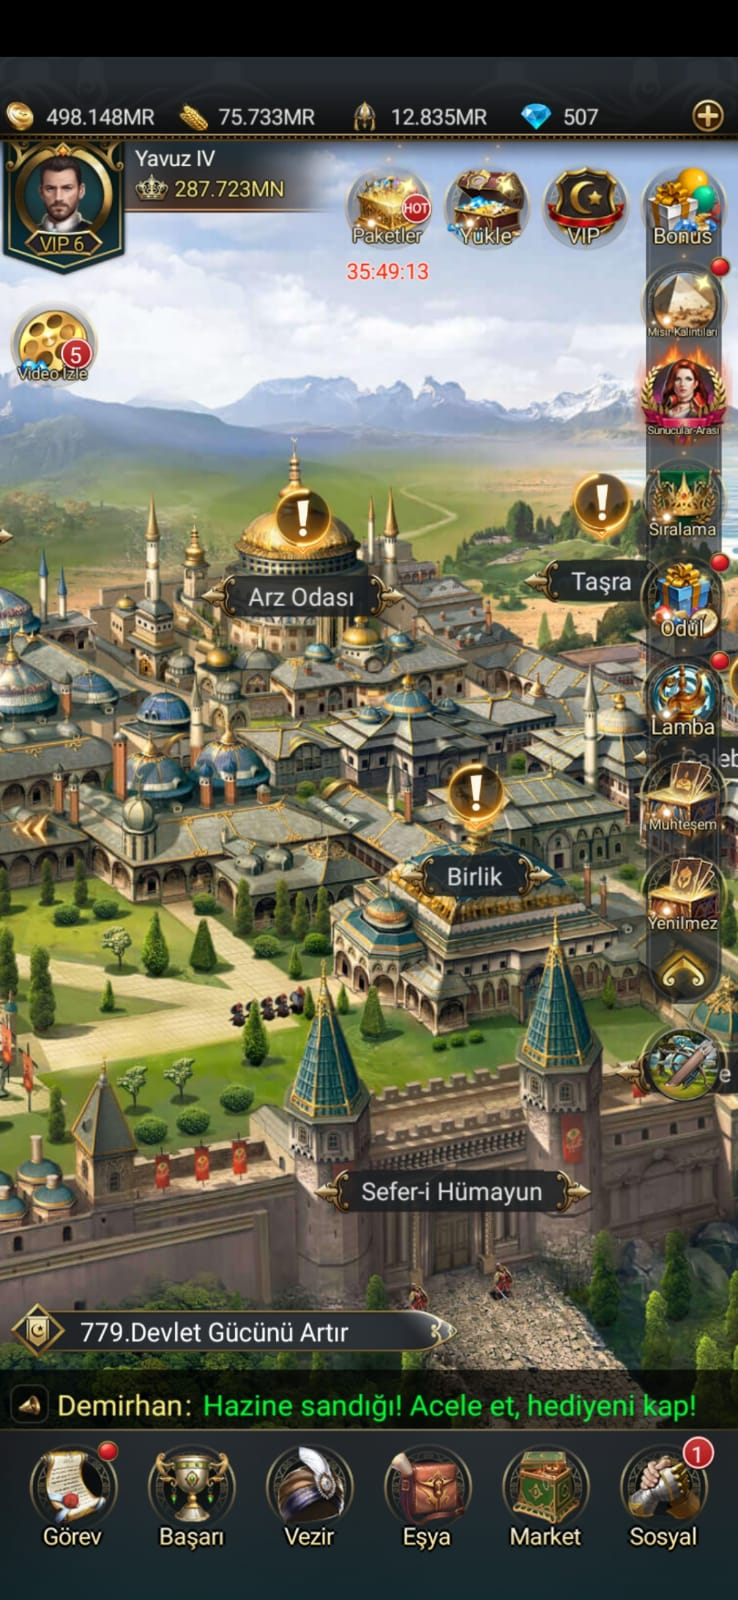 Game of Sultans Mobile GAME OF SULTANS VİP6 - 287M